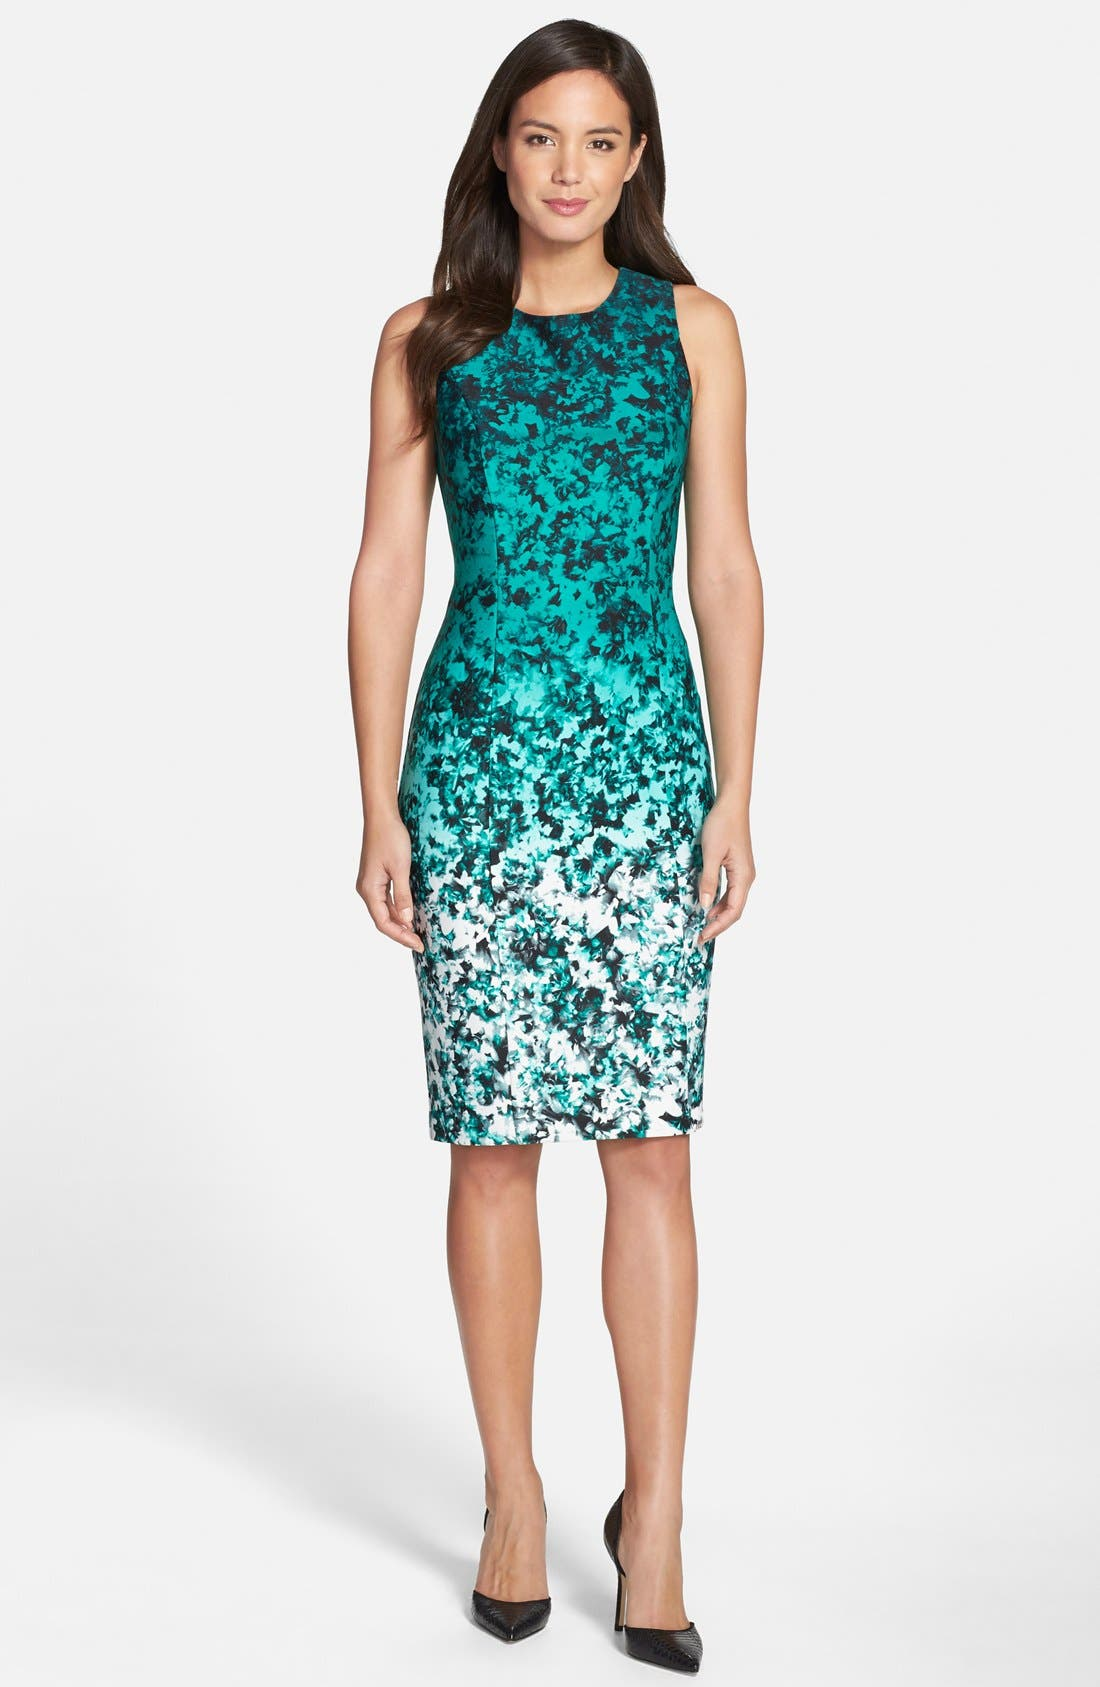 Ombré Floral Print Sleeveless Sheath Dress,                             Alternate thumbnail 2, color,                             310